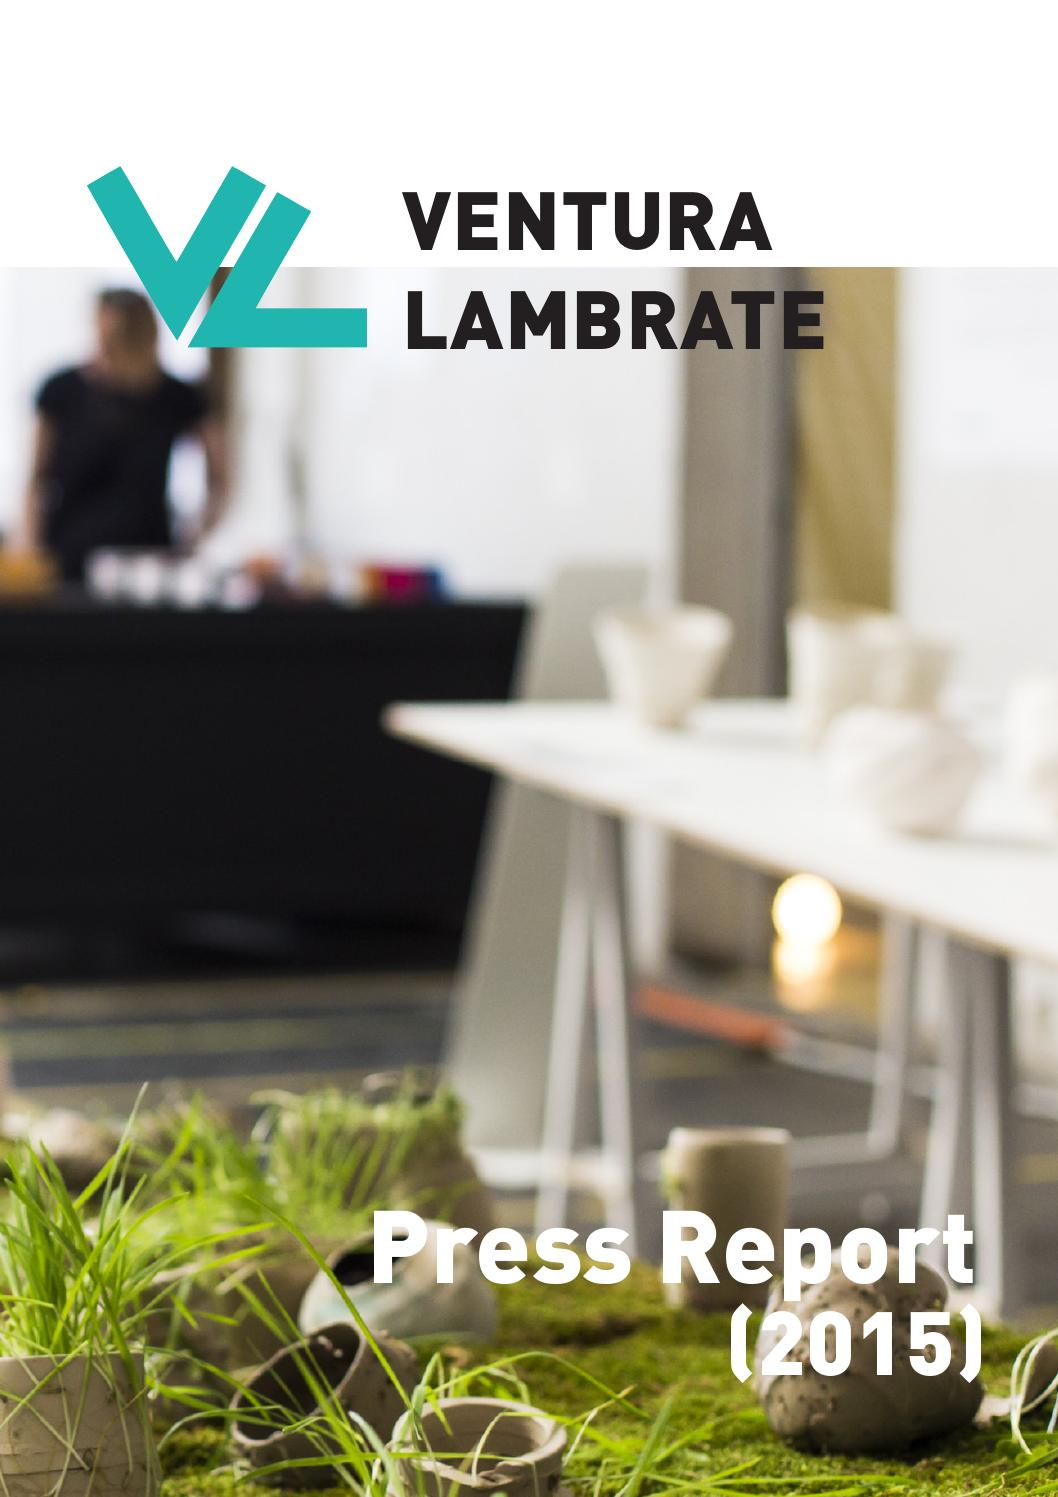 Leeslampje Kind Ventura Lambrate Press Report 2015 By Ventura Projects Issuu